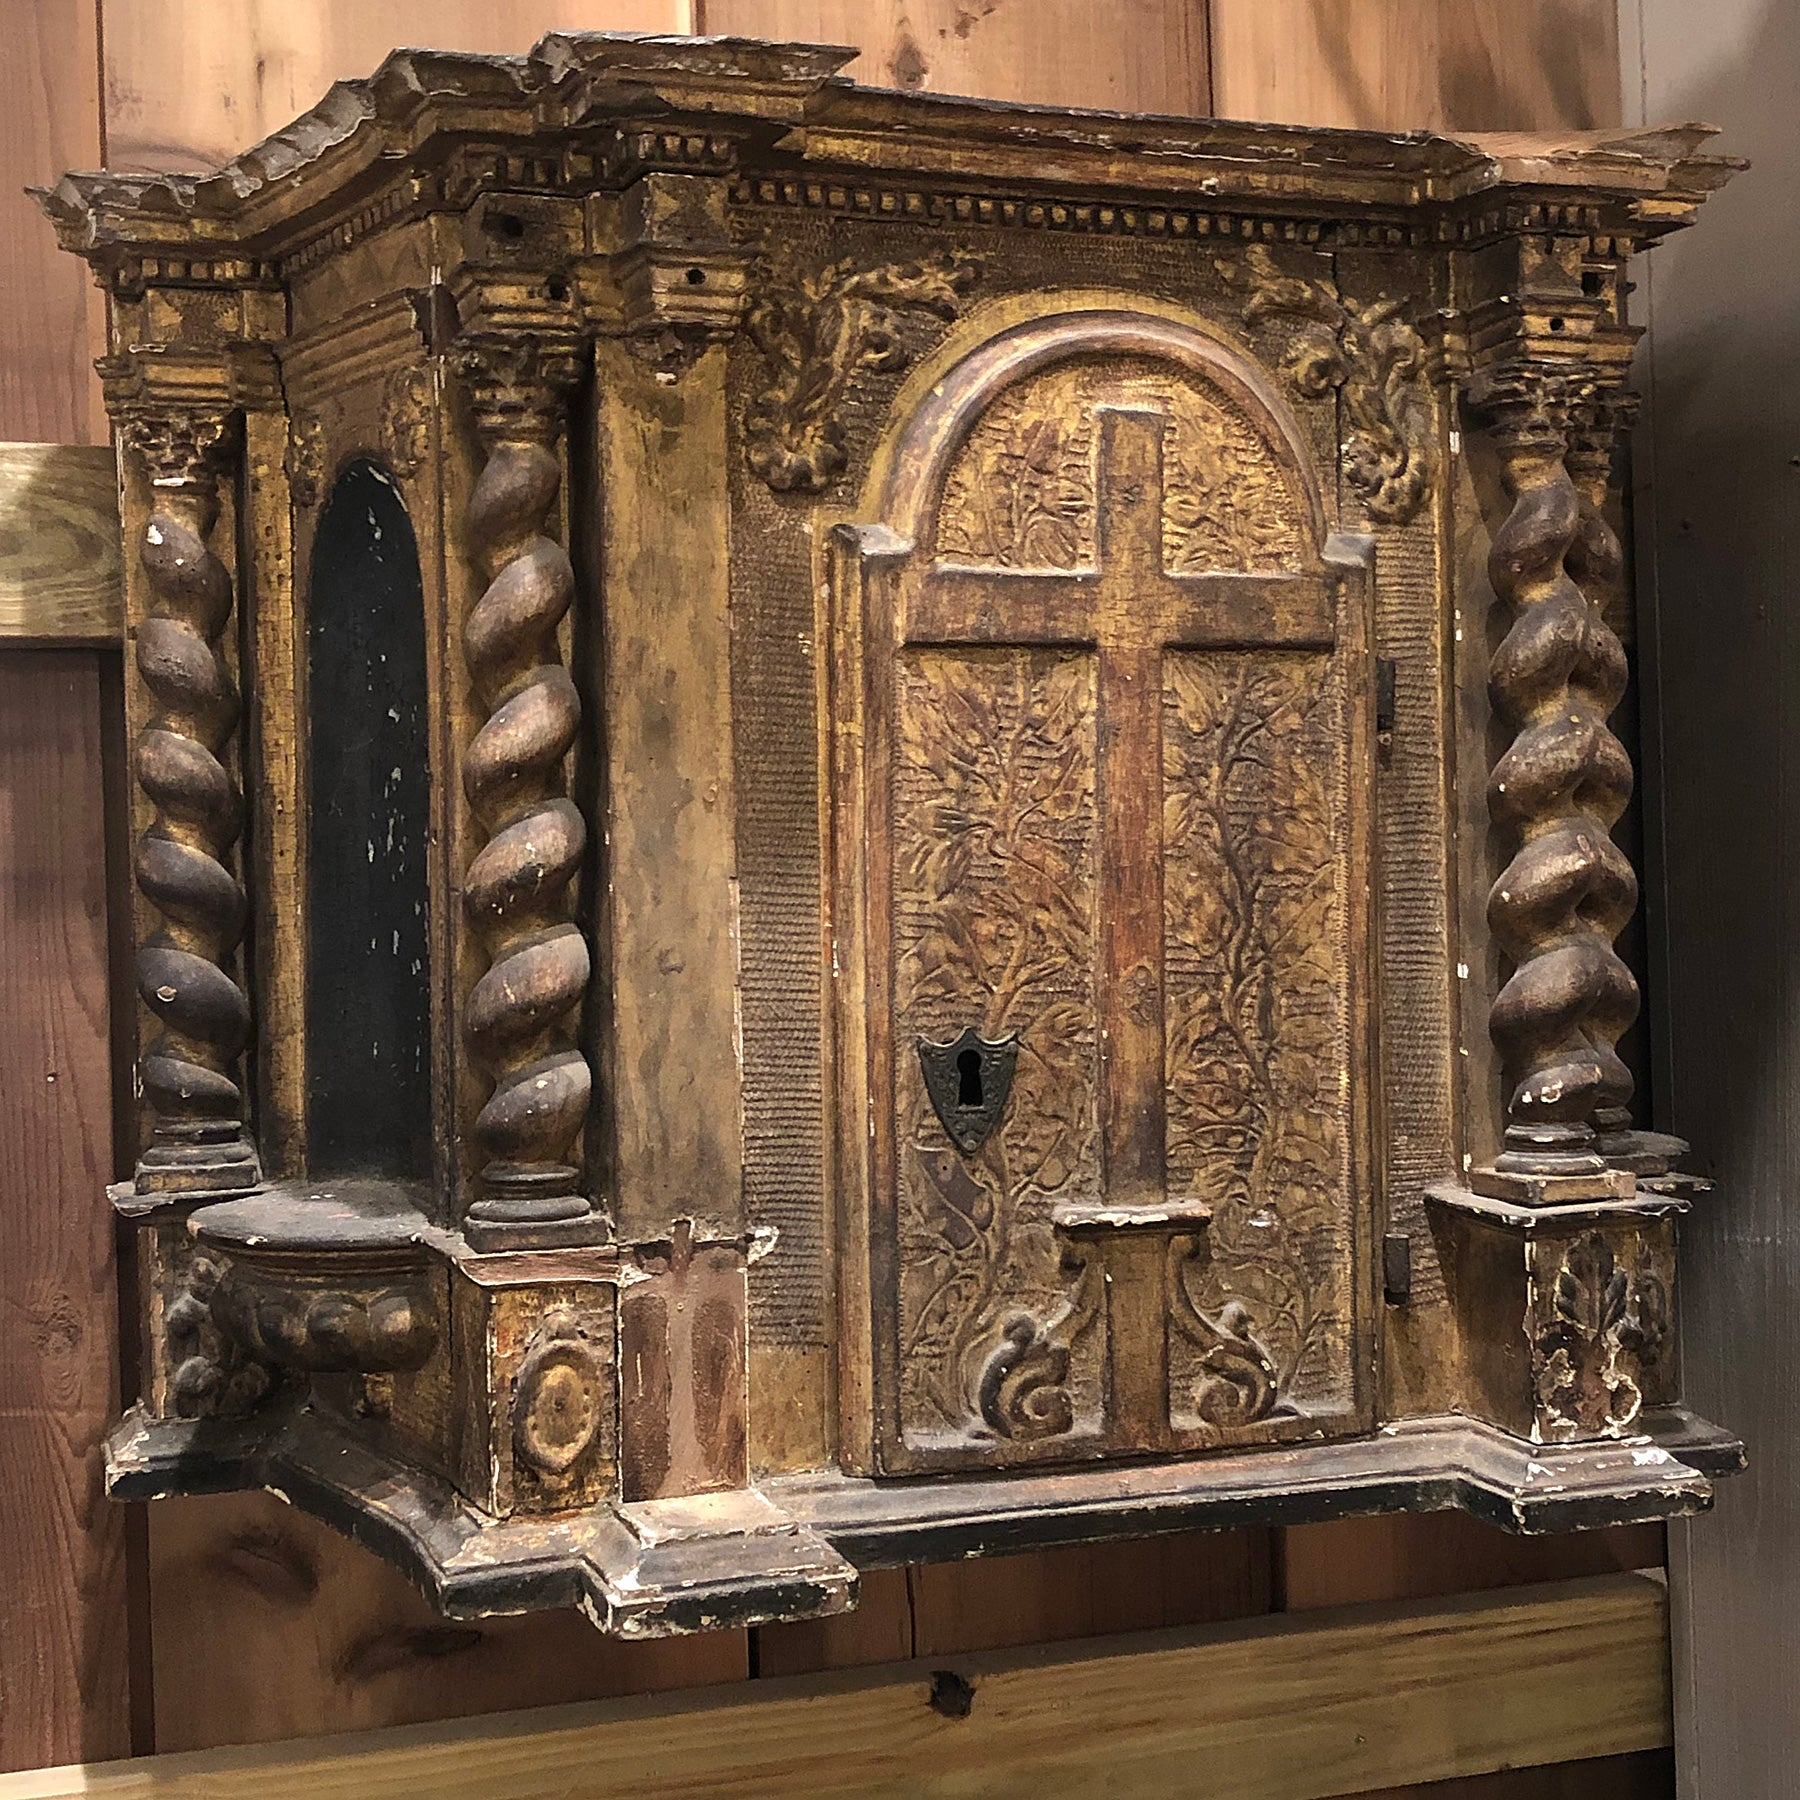 18th century French Church Tabernacle